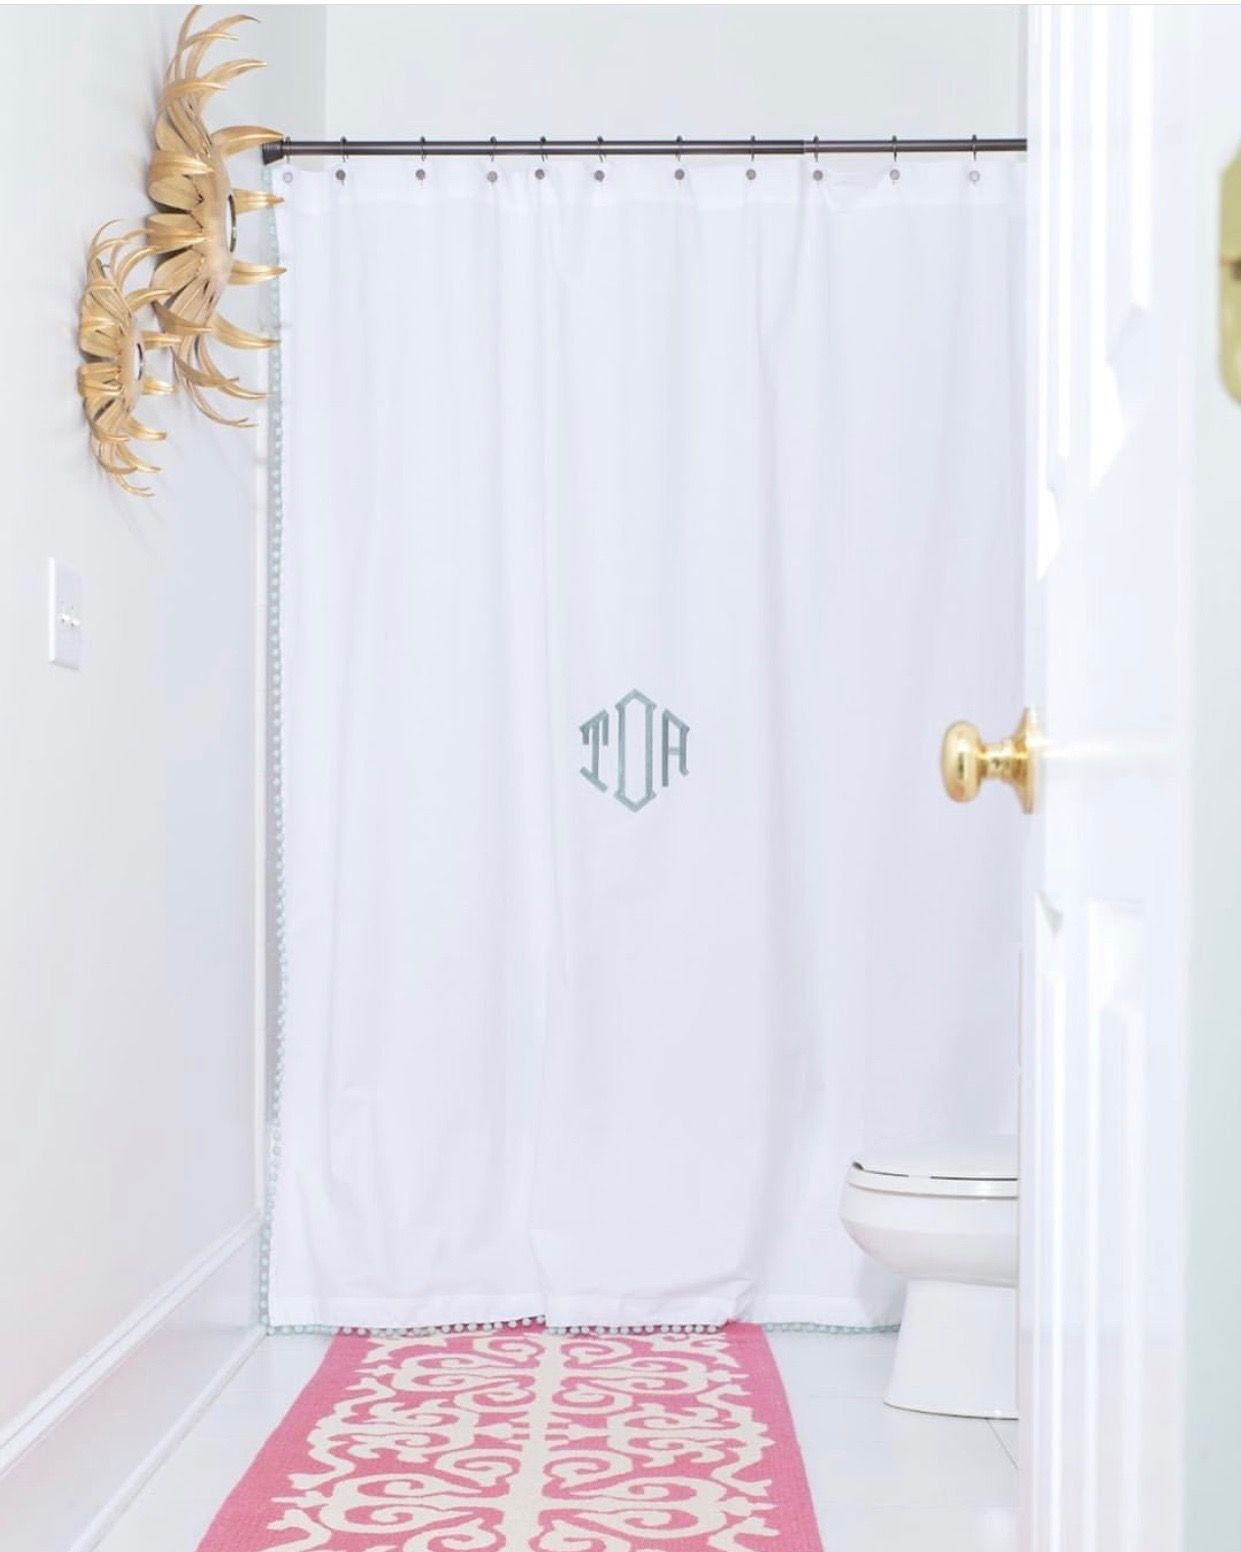 Pin By Sherita On For The Crib Personalized Shower Curtain